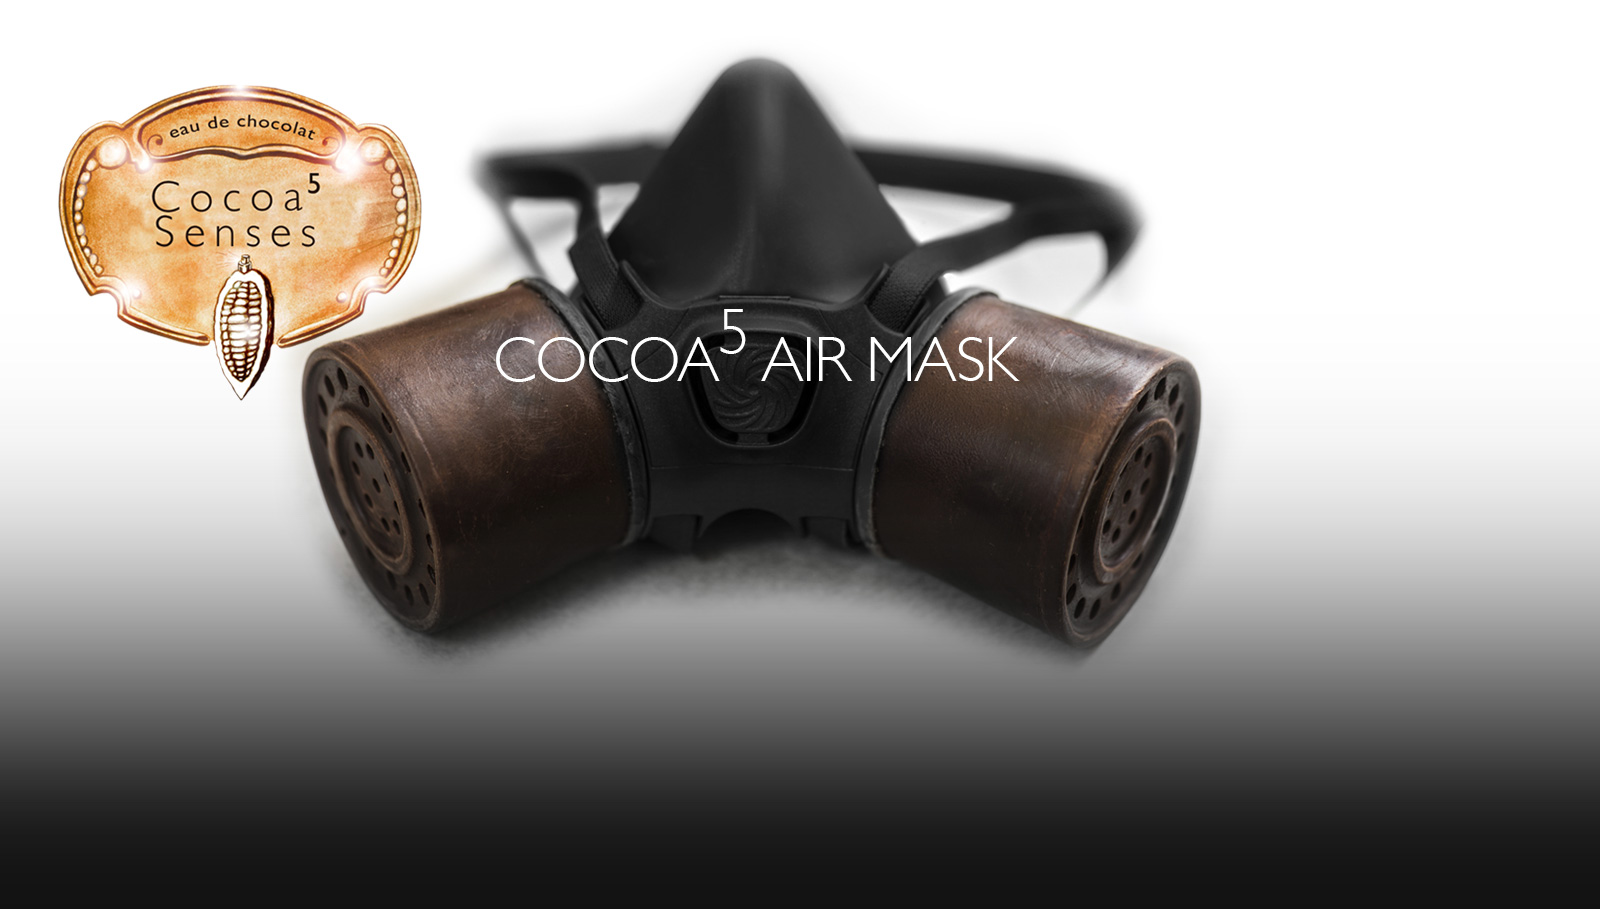 Cocoa-Air-Mask-1-black